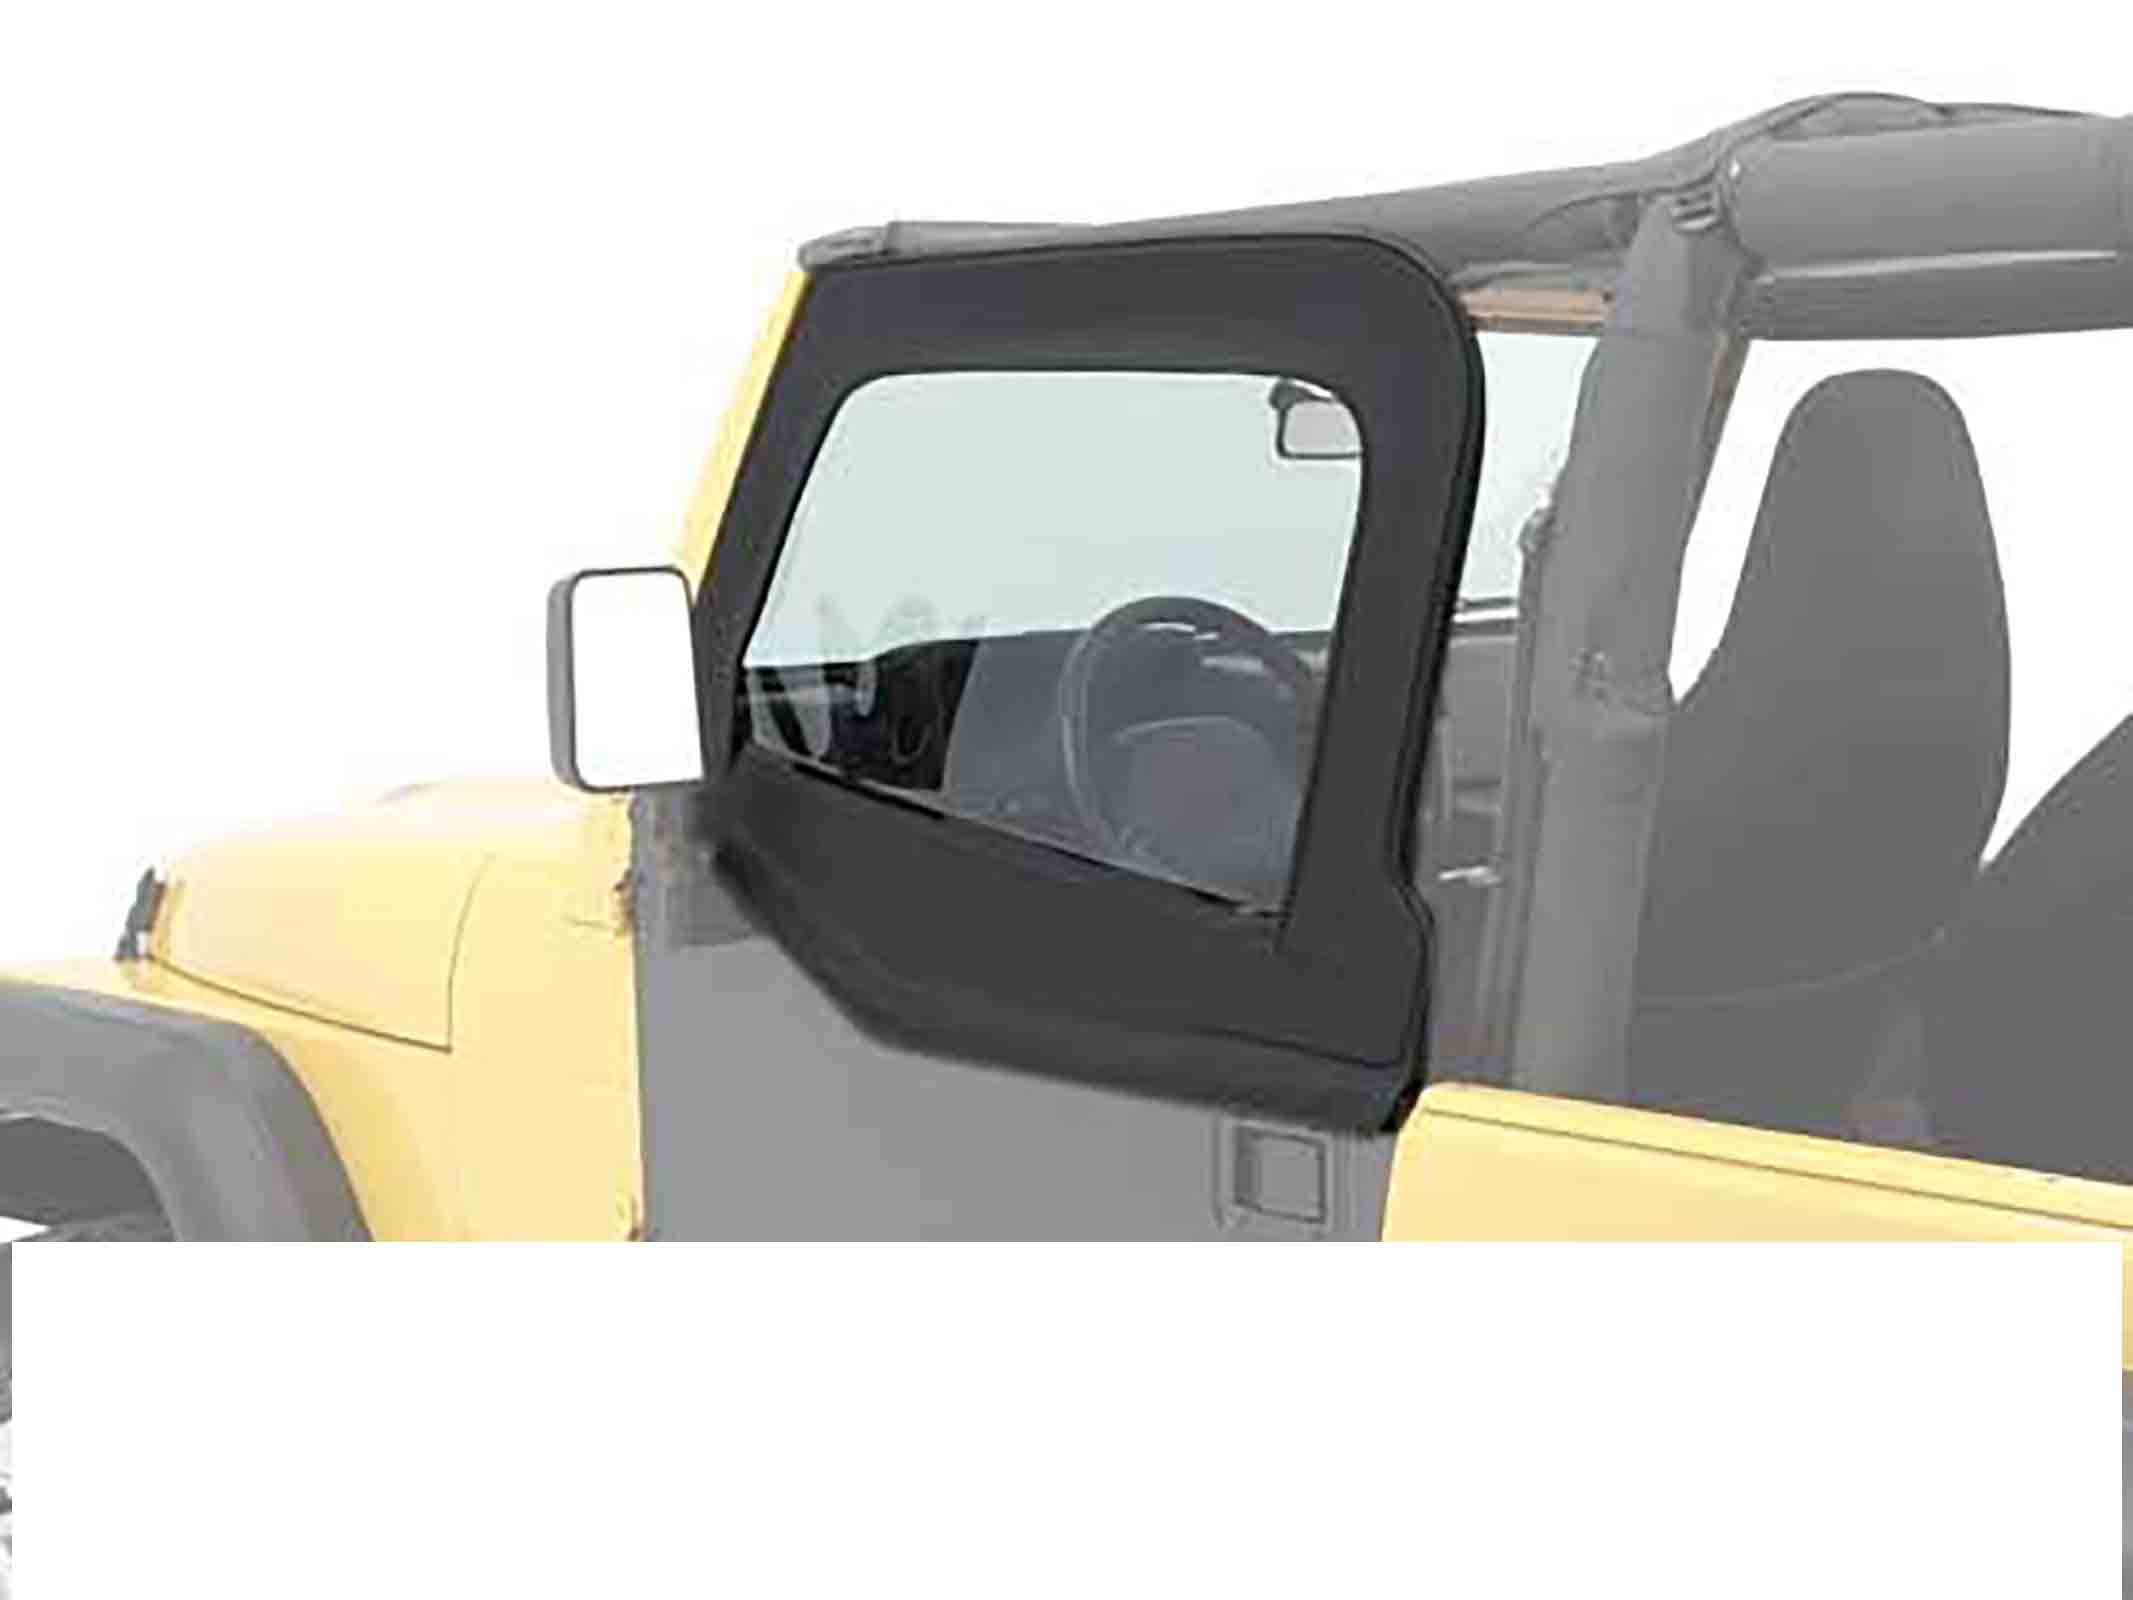 Kit elemento porta superiore wrangler tj 96 06 black denim ricambi jeep